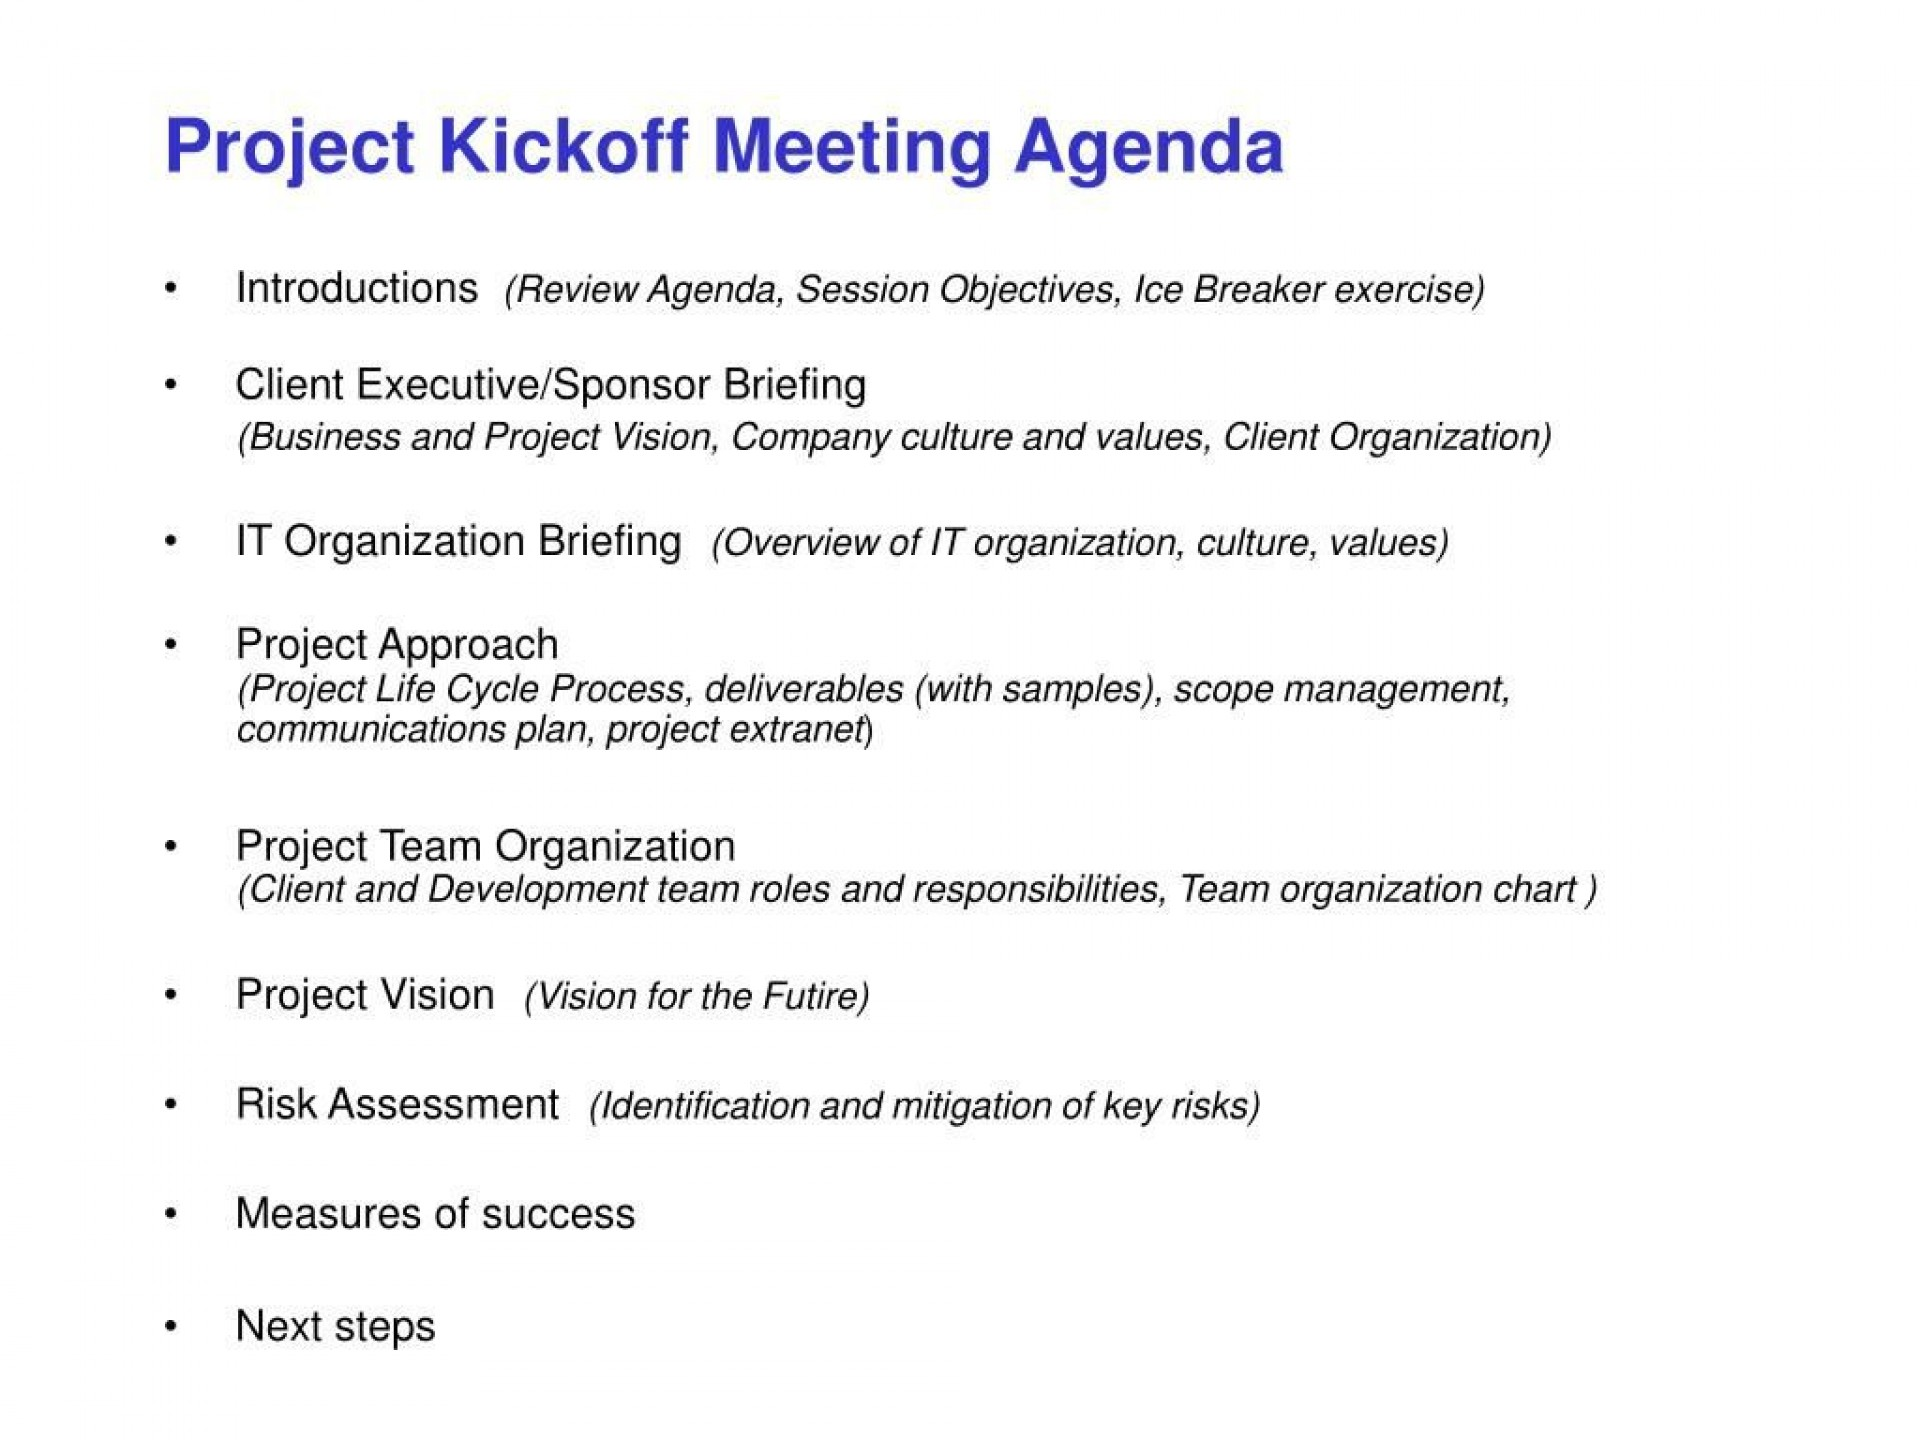 007 Stupendou Project Kickoff Meeting Powerpoint Template Ppt Highest Clarity  Kick Off Presentation1920